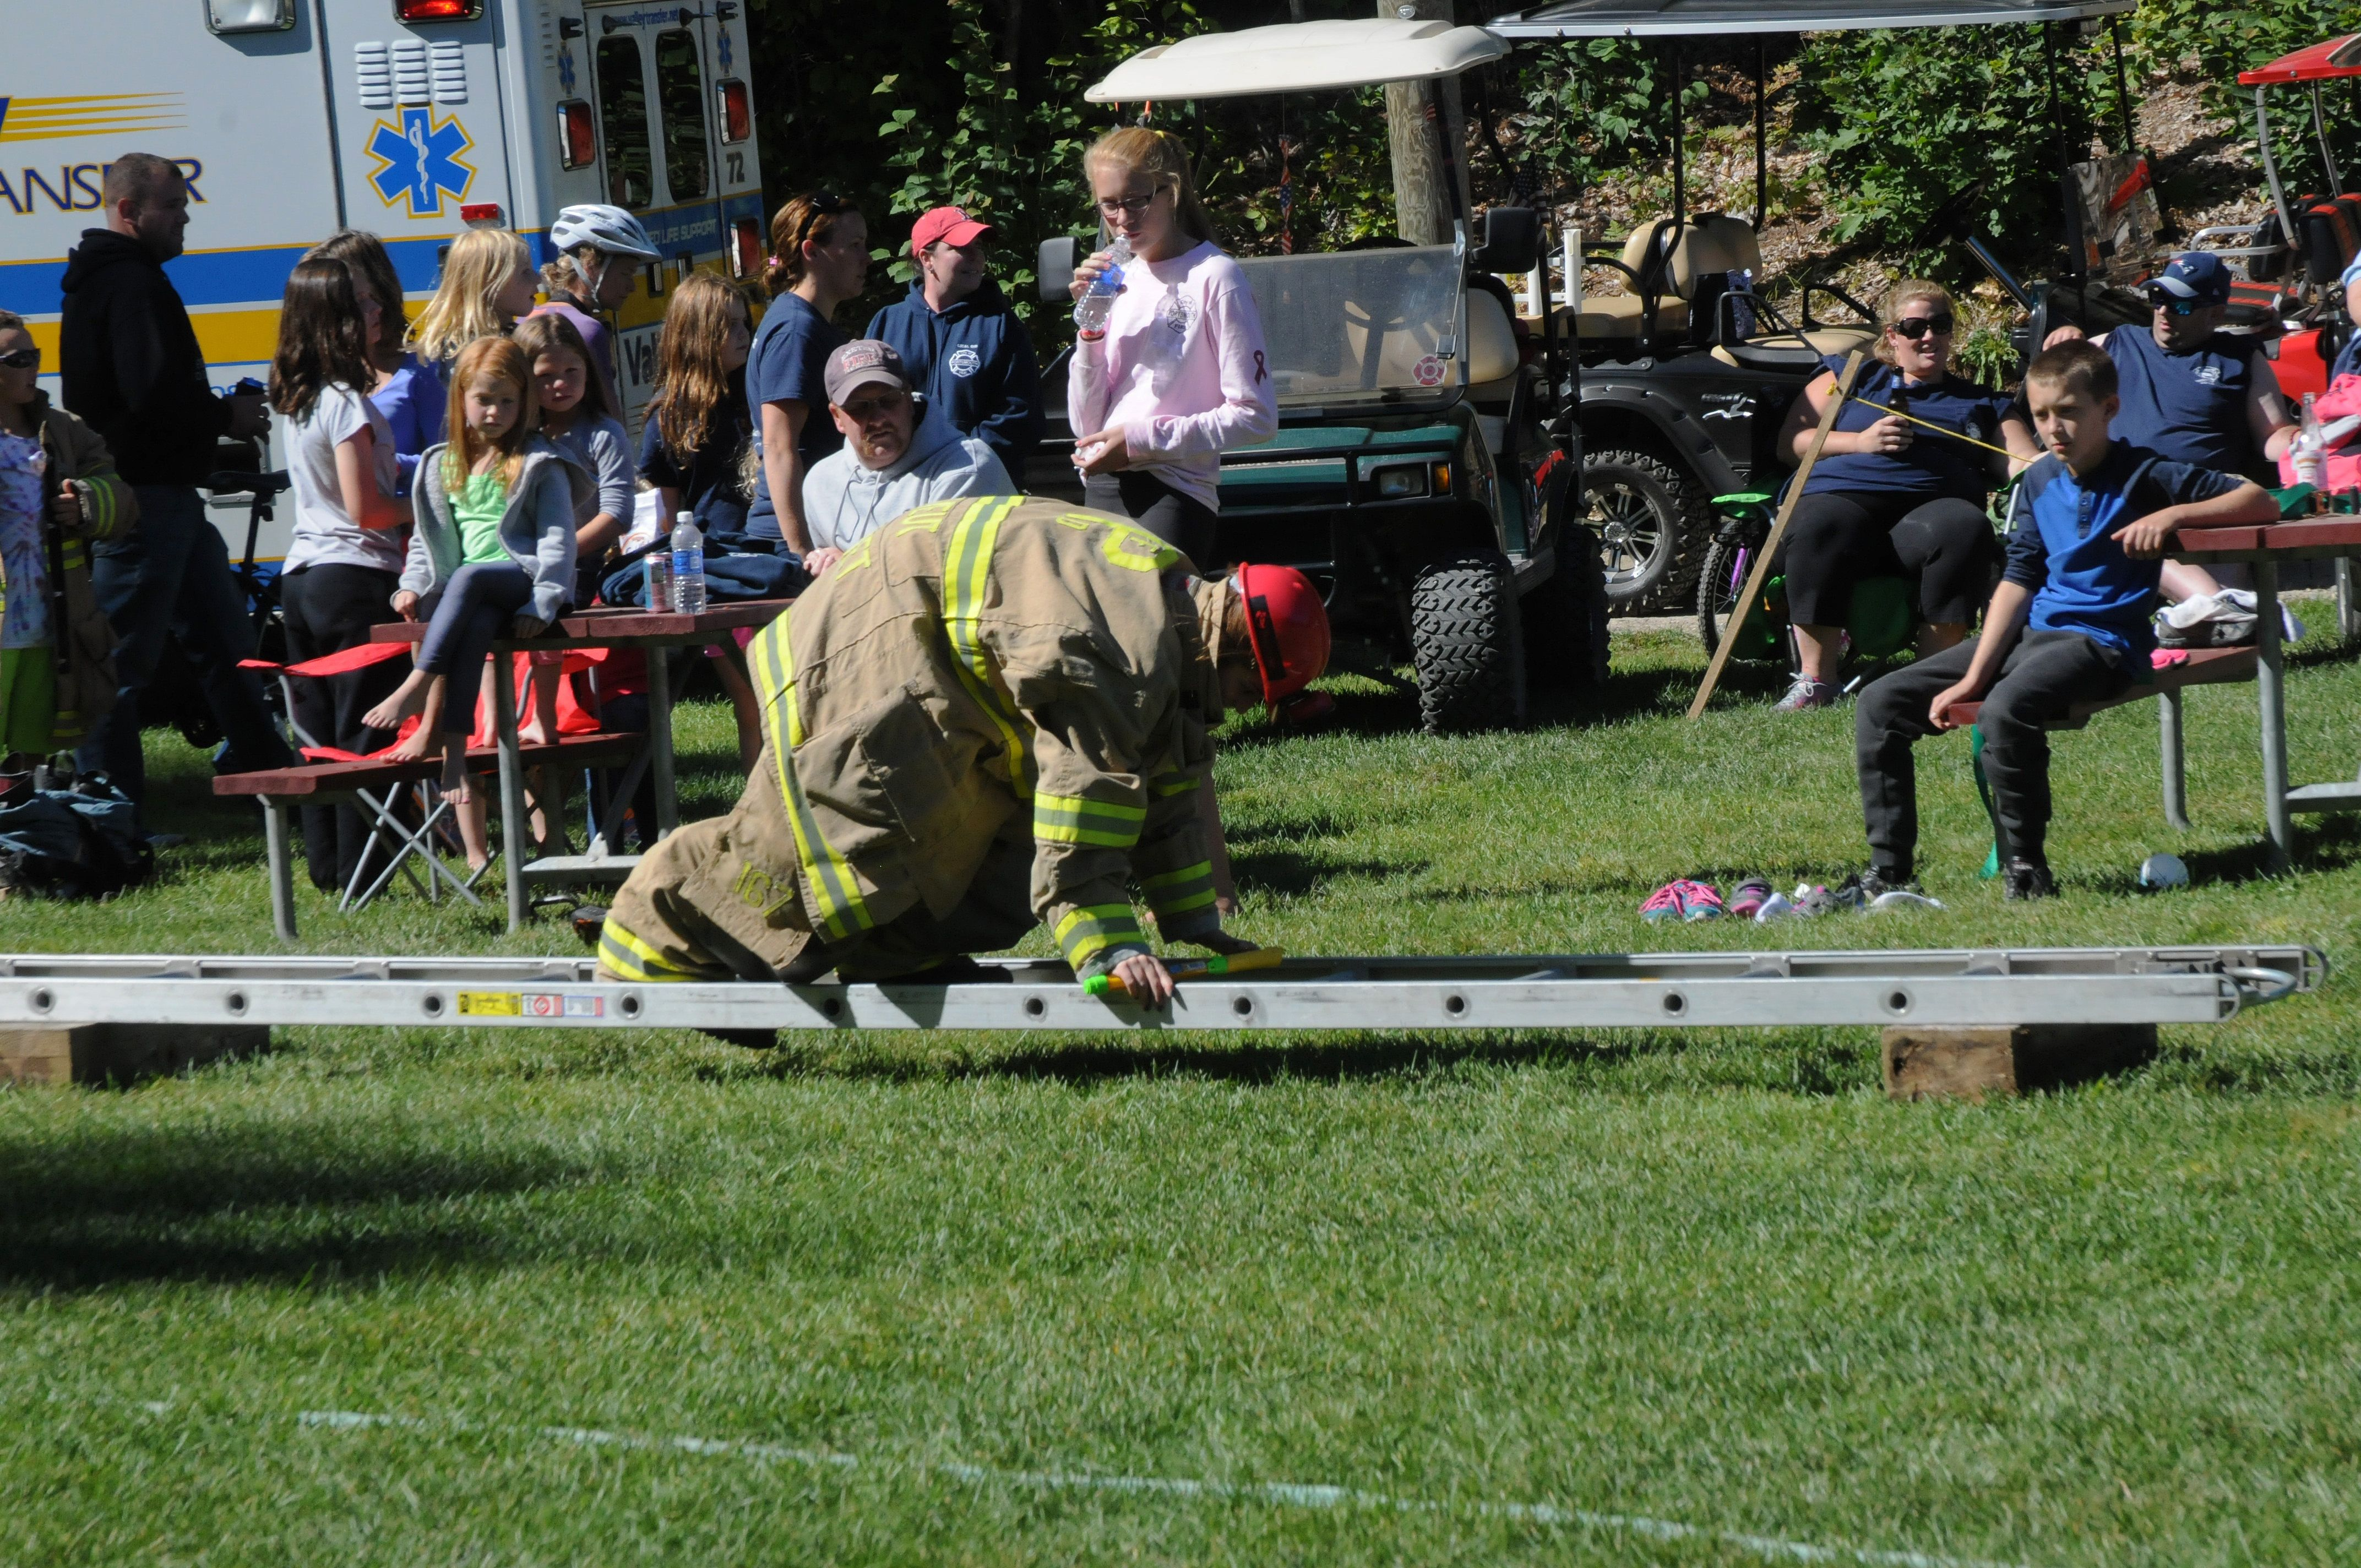 Firefighters' Appreciation Weekend at Danforth Bay is a camp favorite. Mark your calendar to join us this fall!